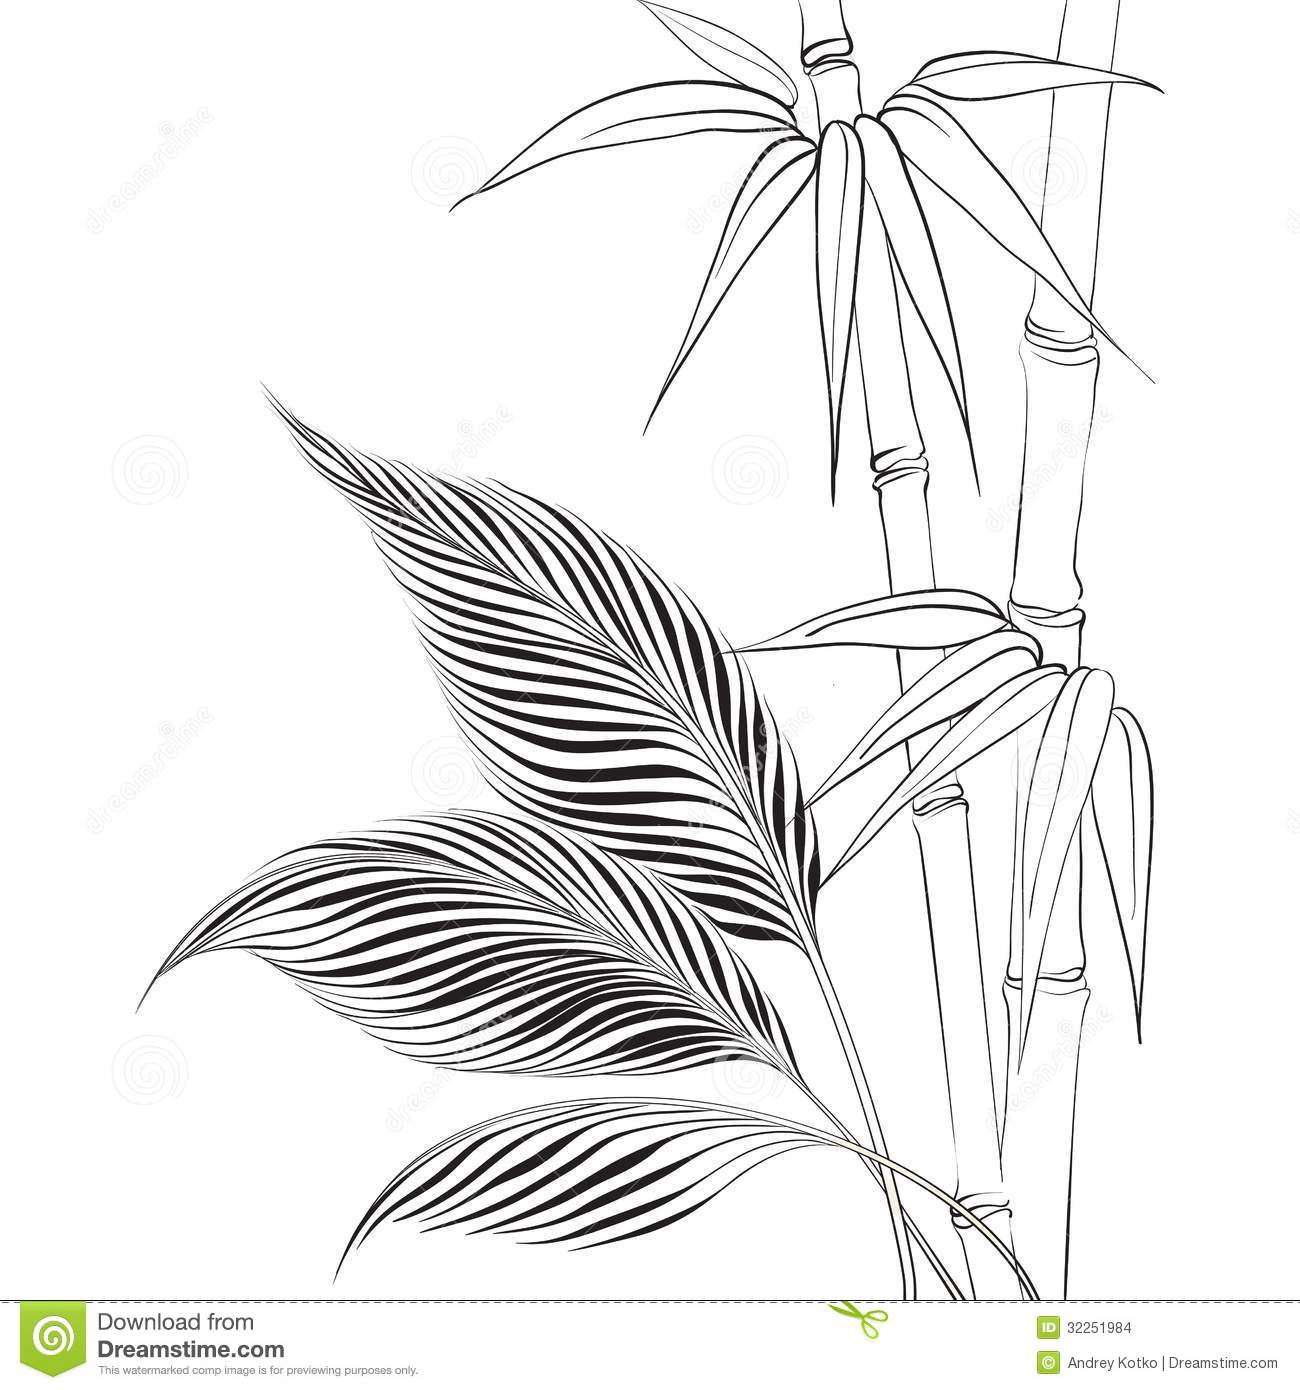 bamboo coloring pages - palm tree over bamboo forest stock vector image 32251984